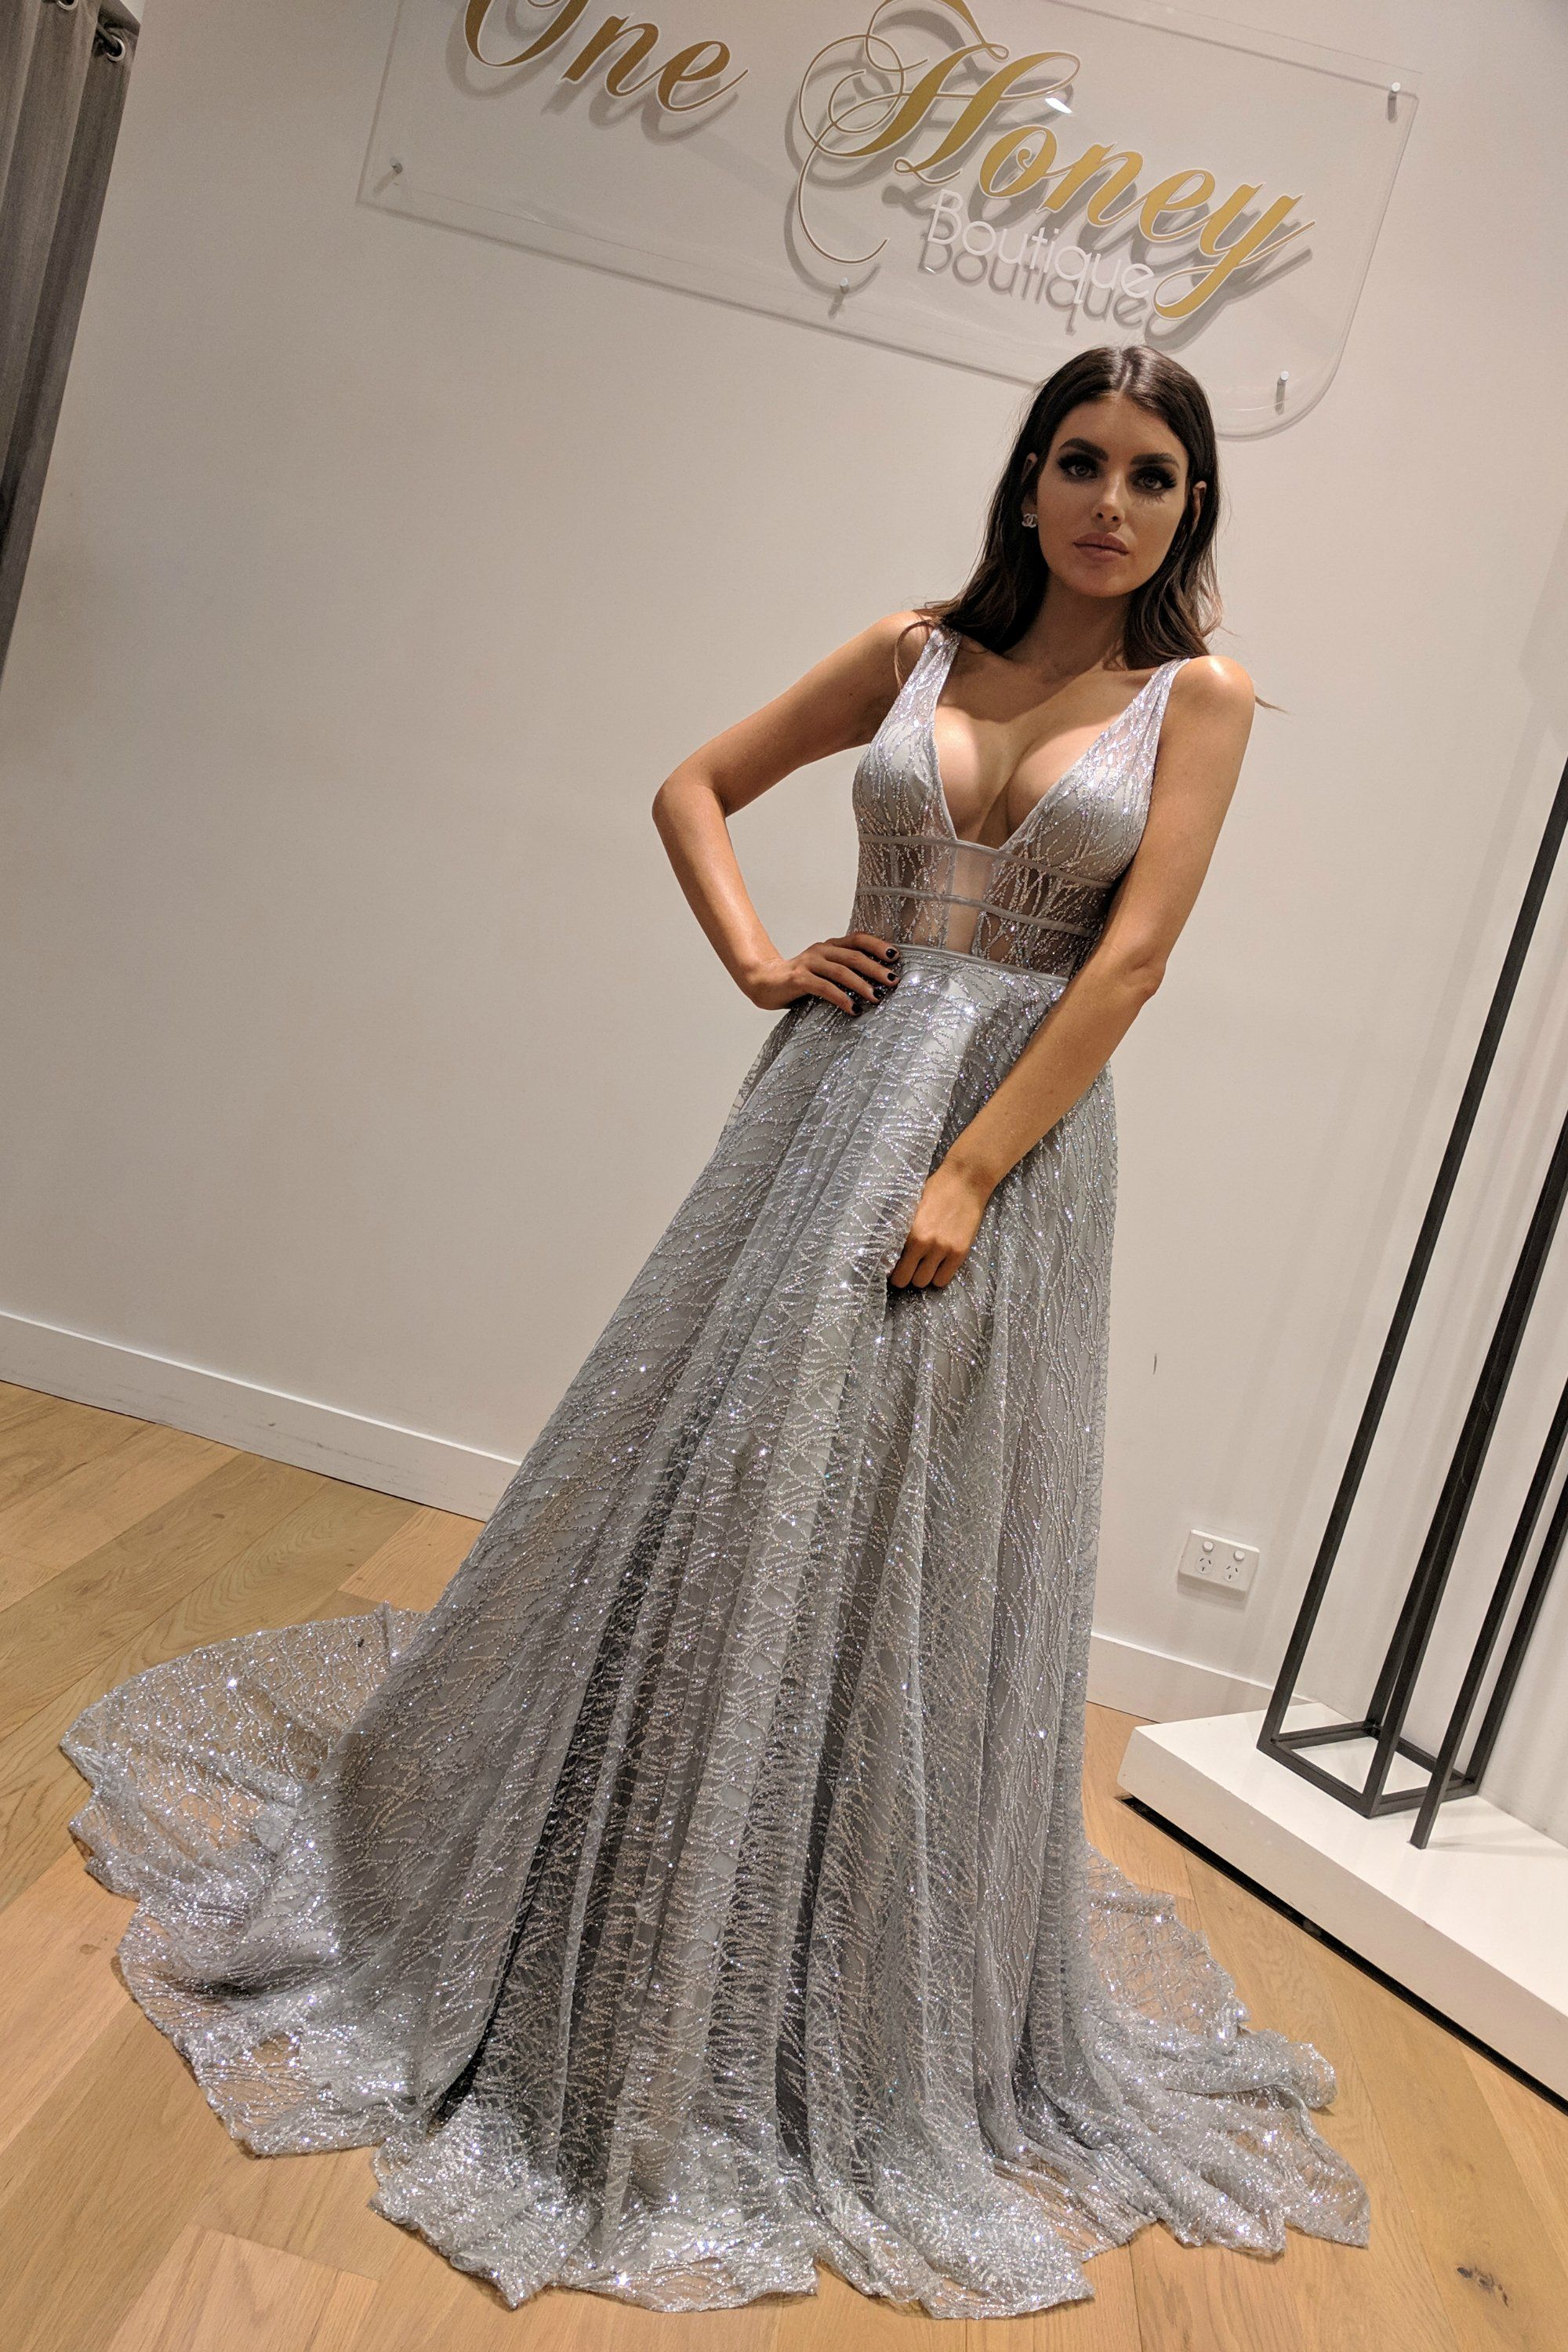 aa0d878e325e Honey Couture DAZZLING Silver Sequin Princess Formal Gown Dress ...